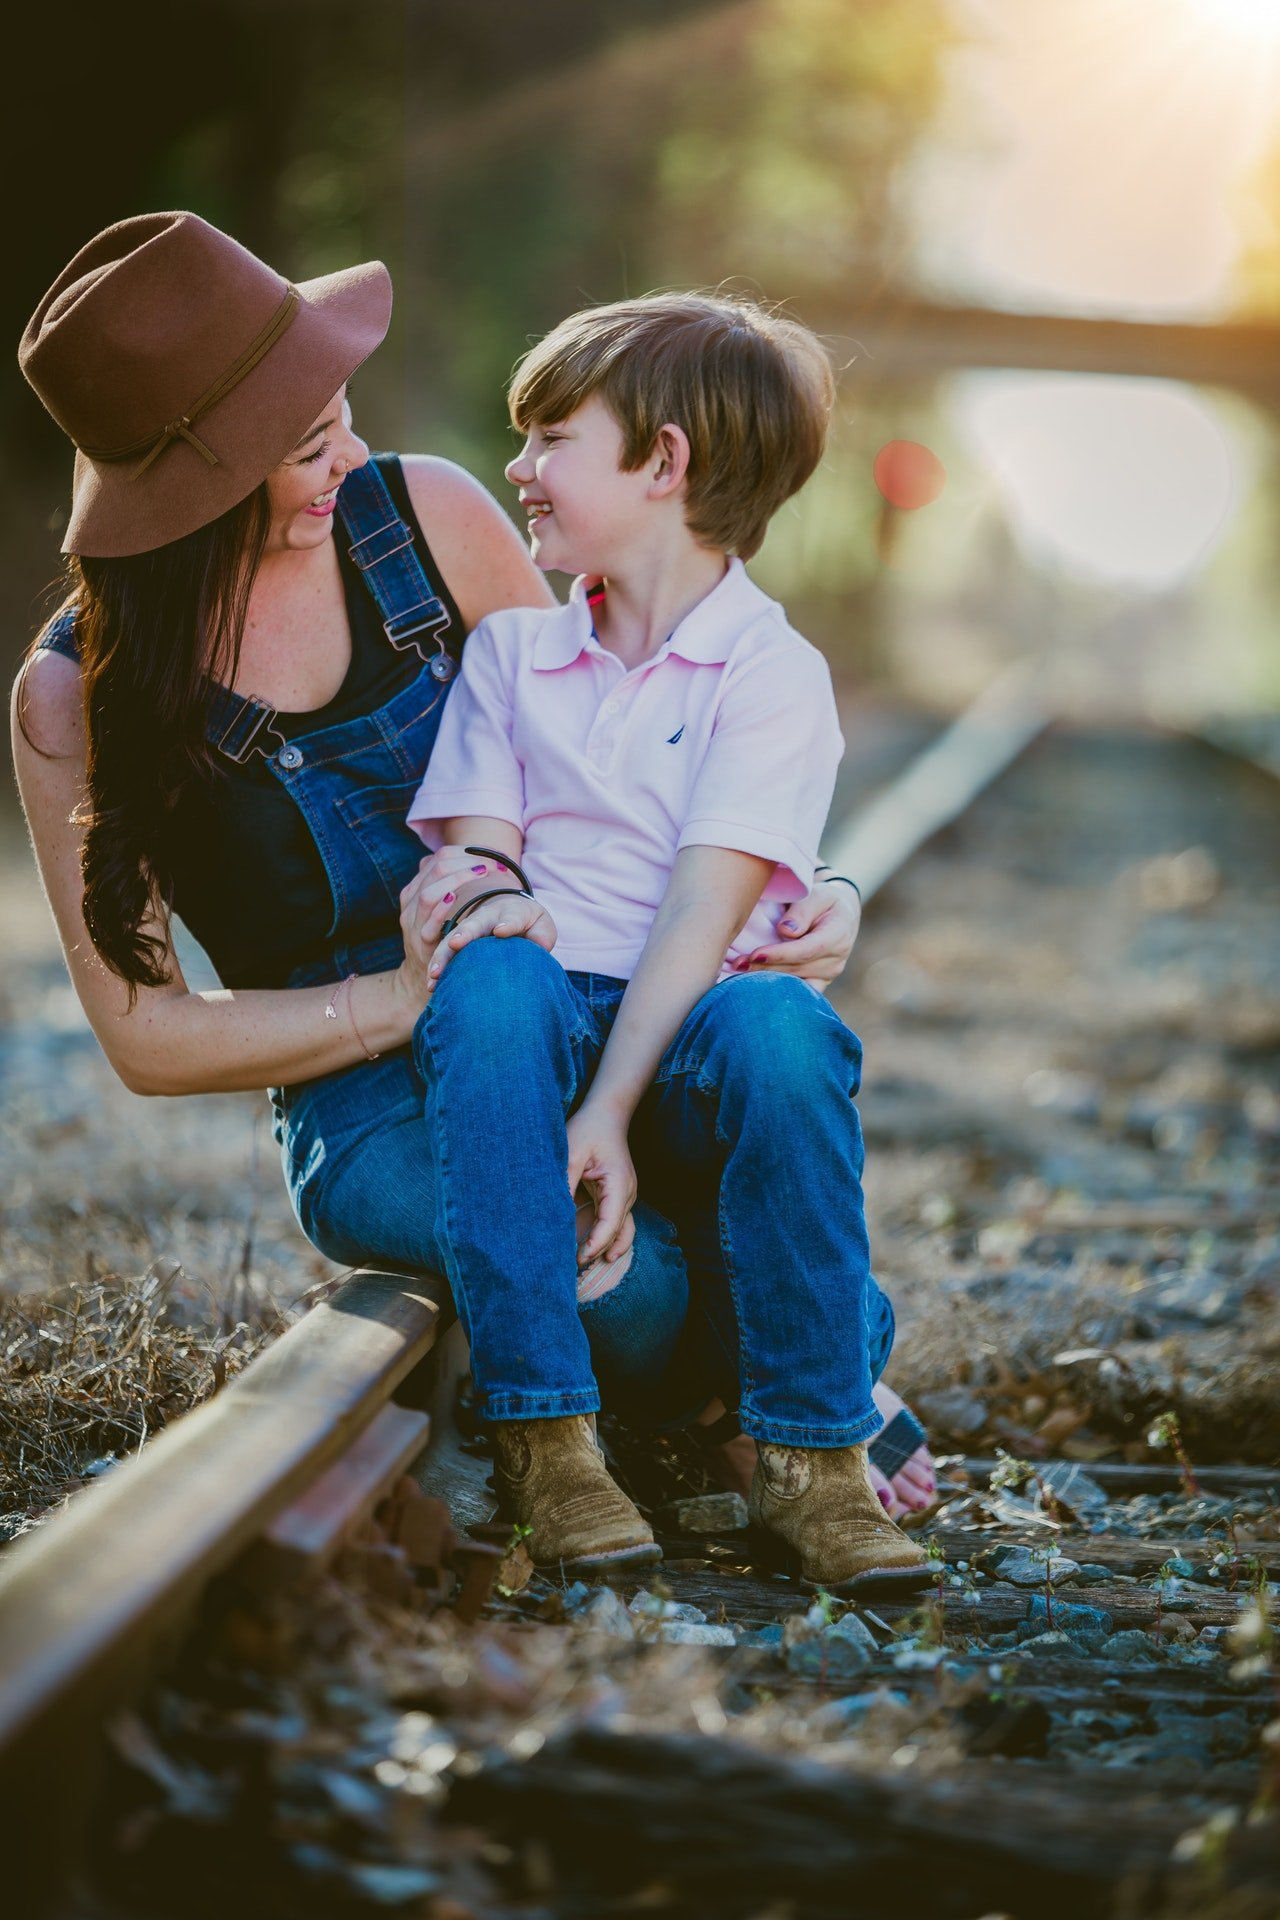 The boy, whose name was Christian, was reunited with his parents | Source: Pexels